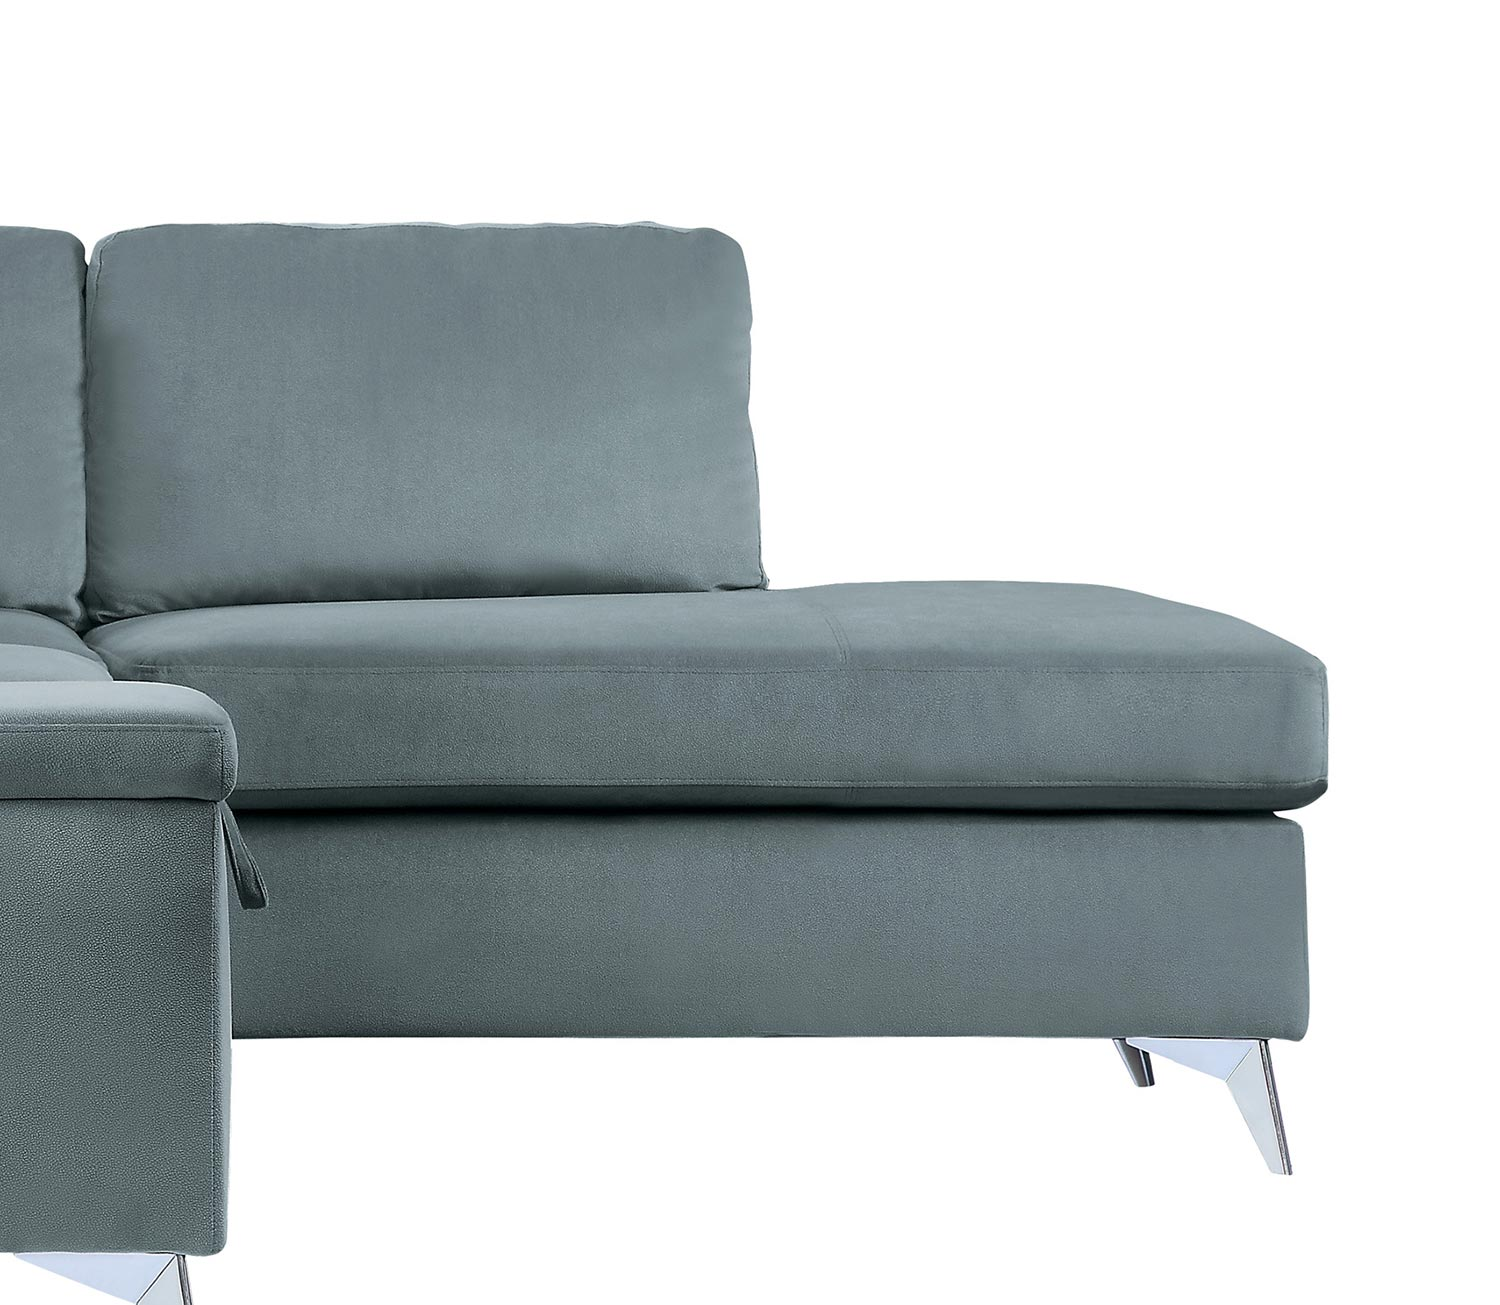 Homelegance Radnor Reversible Chaise, Left/Right Unit - Gray